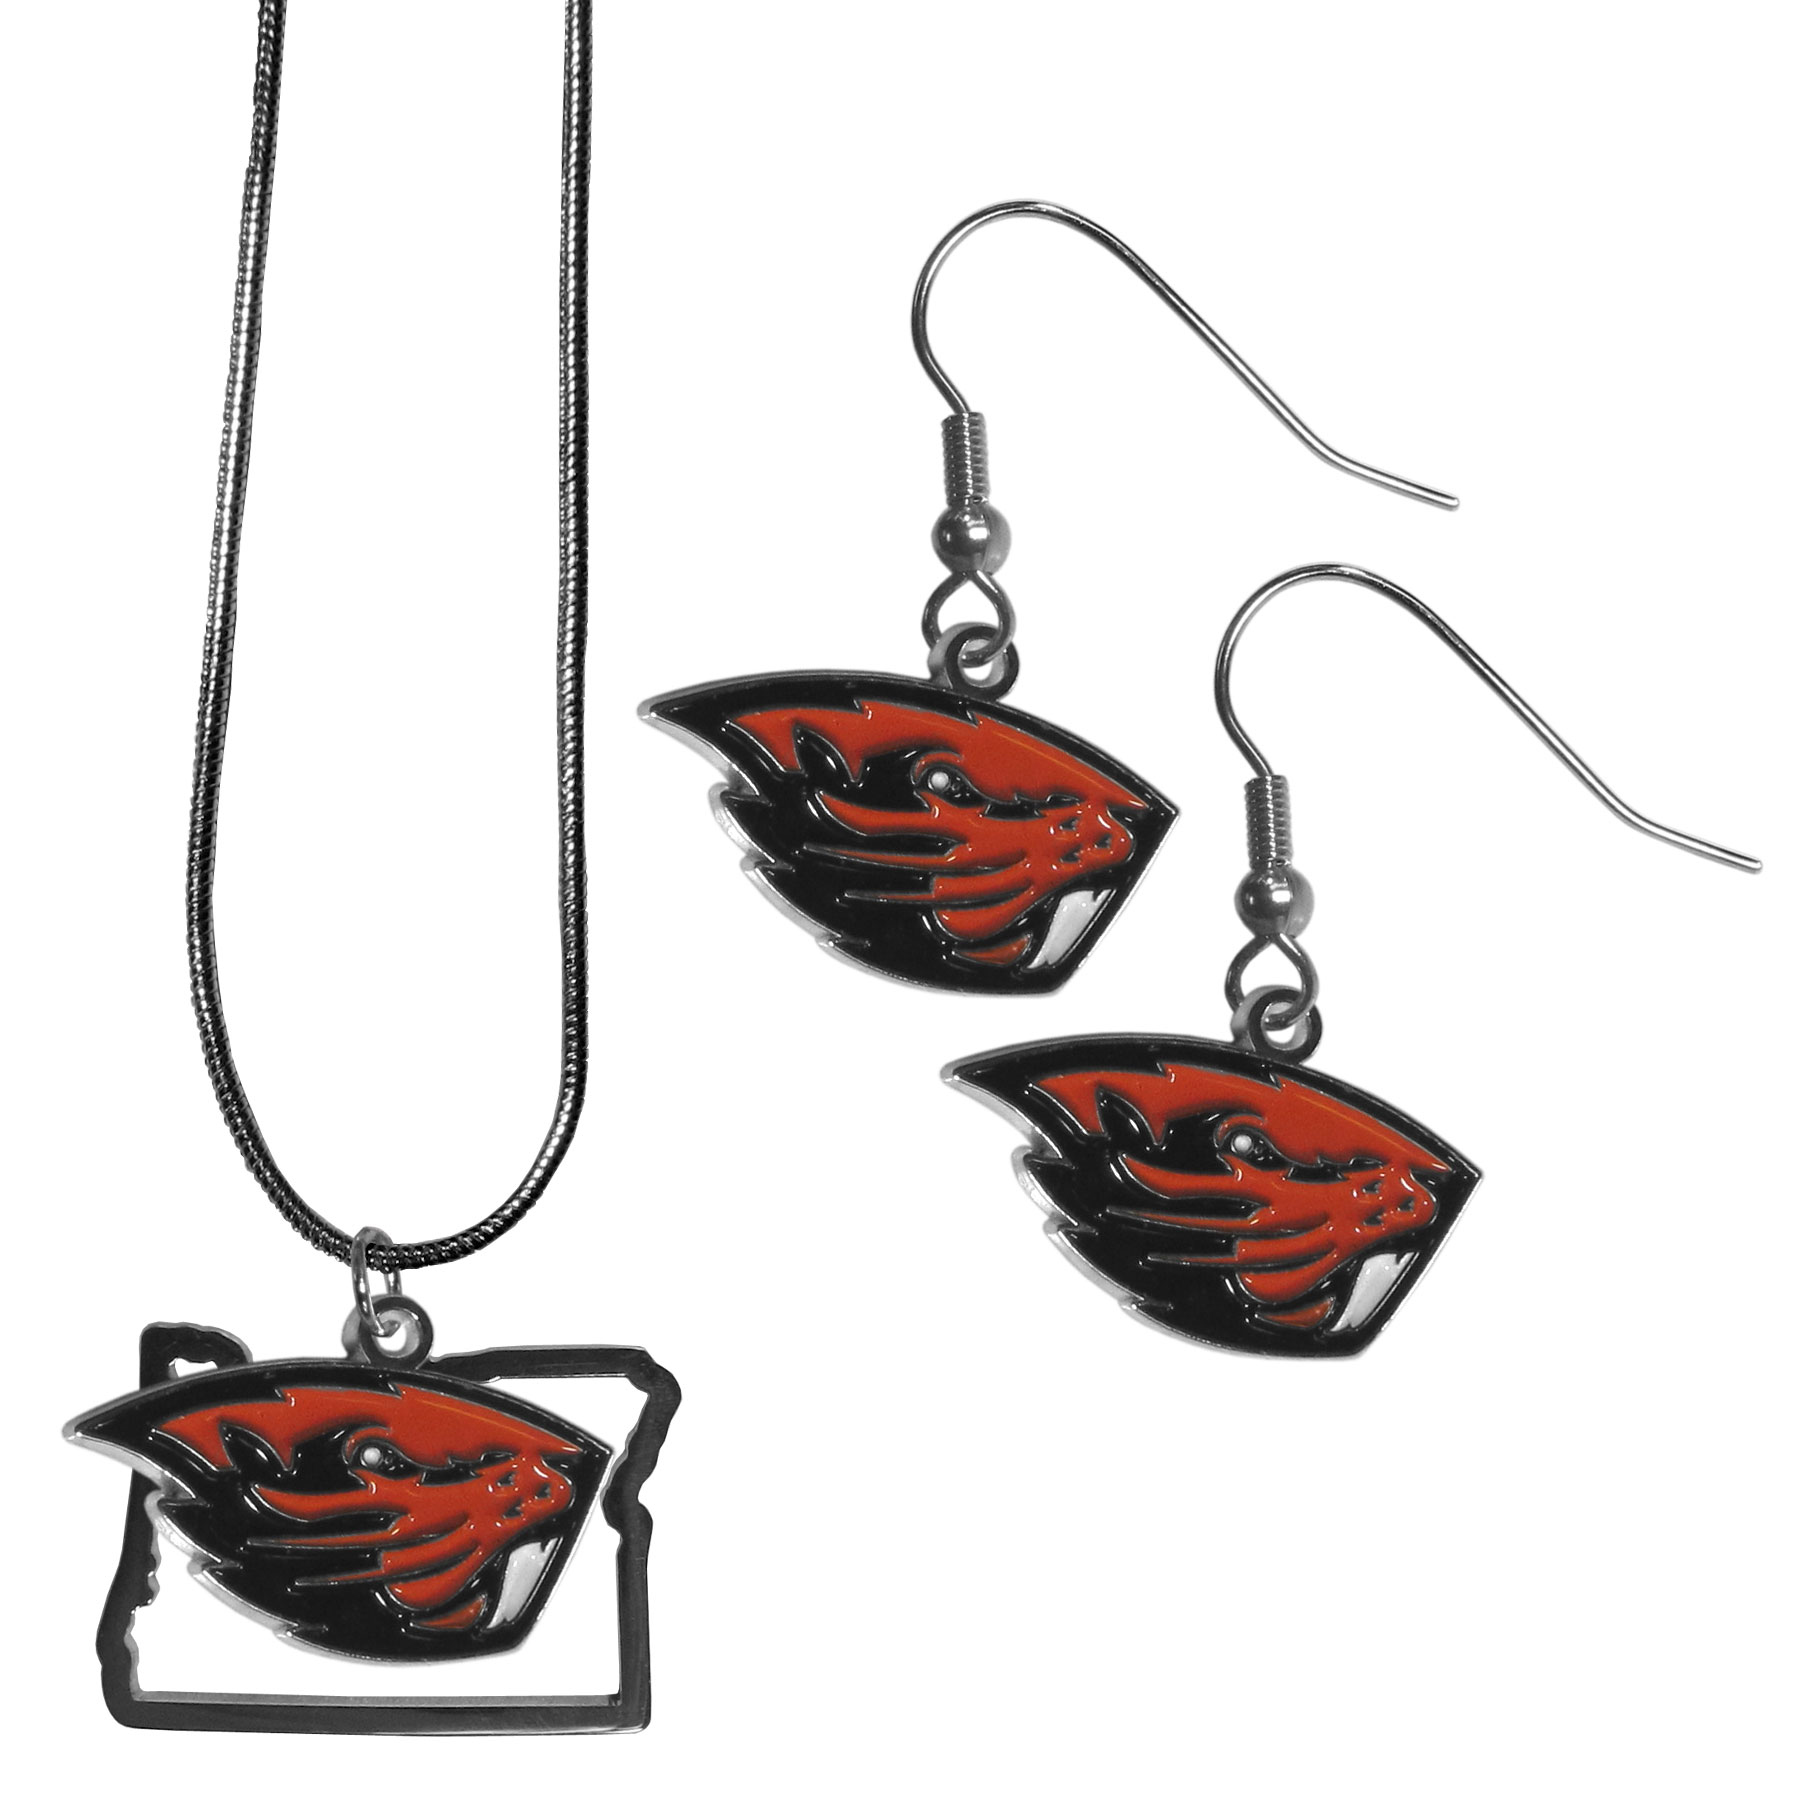 Oregon St. Beavers Dangle Earrings and State Necklace Set - Get in on the trend! State themes are a trend that just keeps getting more popular and this jewelry set takes the state style and give it a sporty twist with a Oregon St. Beavers necklace that features an Arizona state outline charm paired with a beautiful team charm and matching team charm dangle earrings. The earrings feature hypoallergenic fishhook posts that are nickel free.